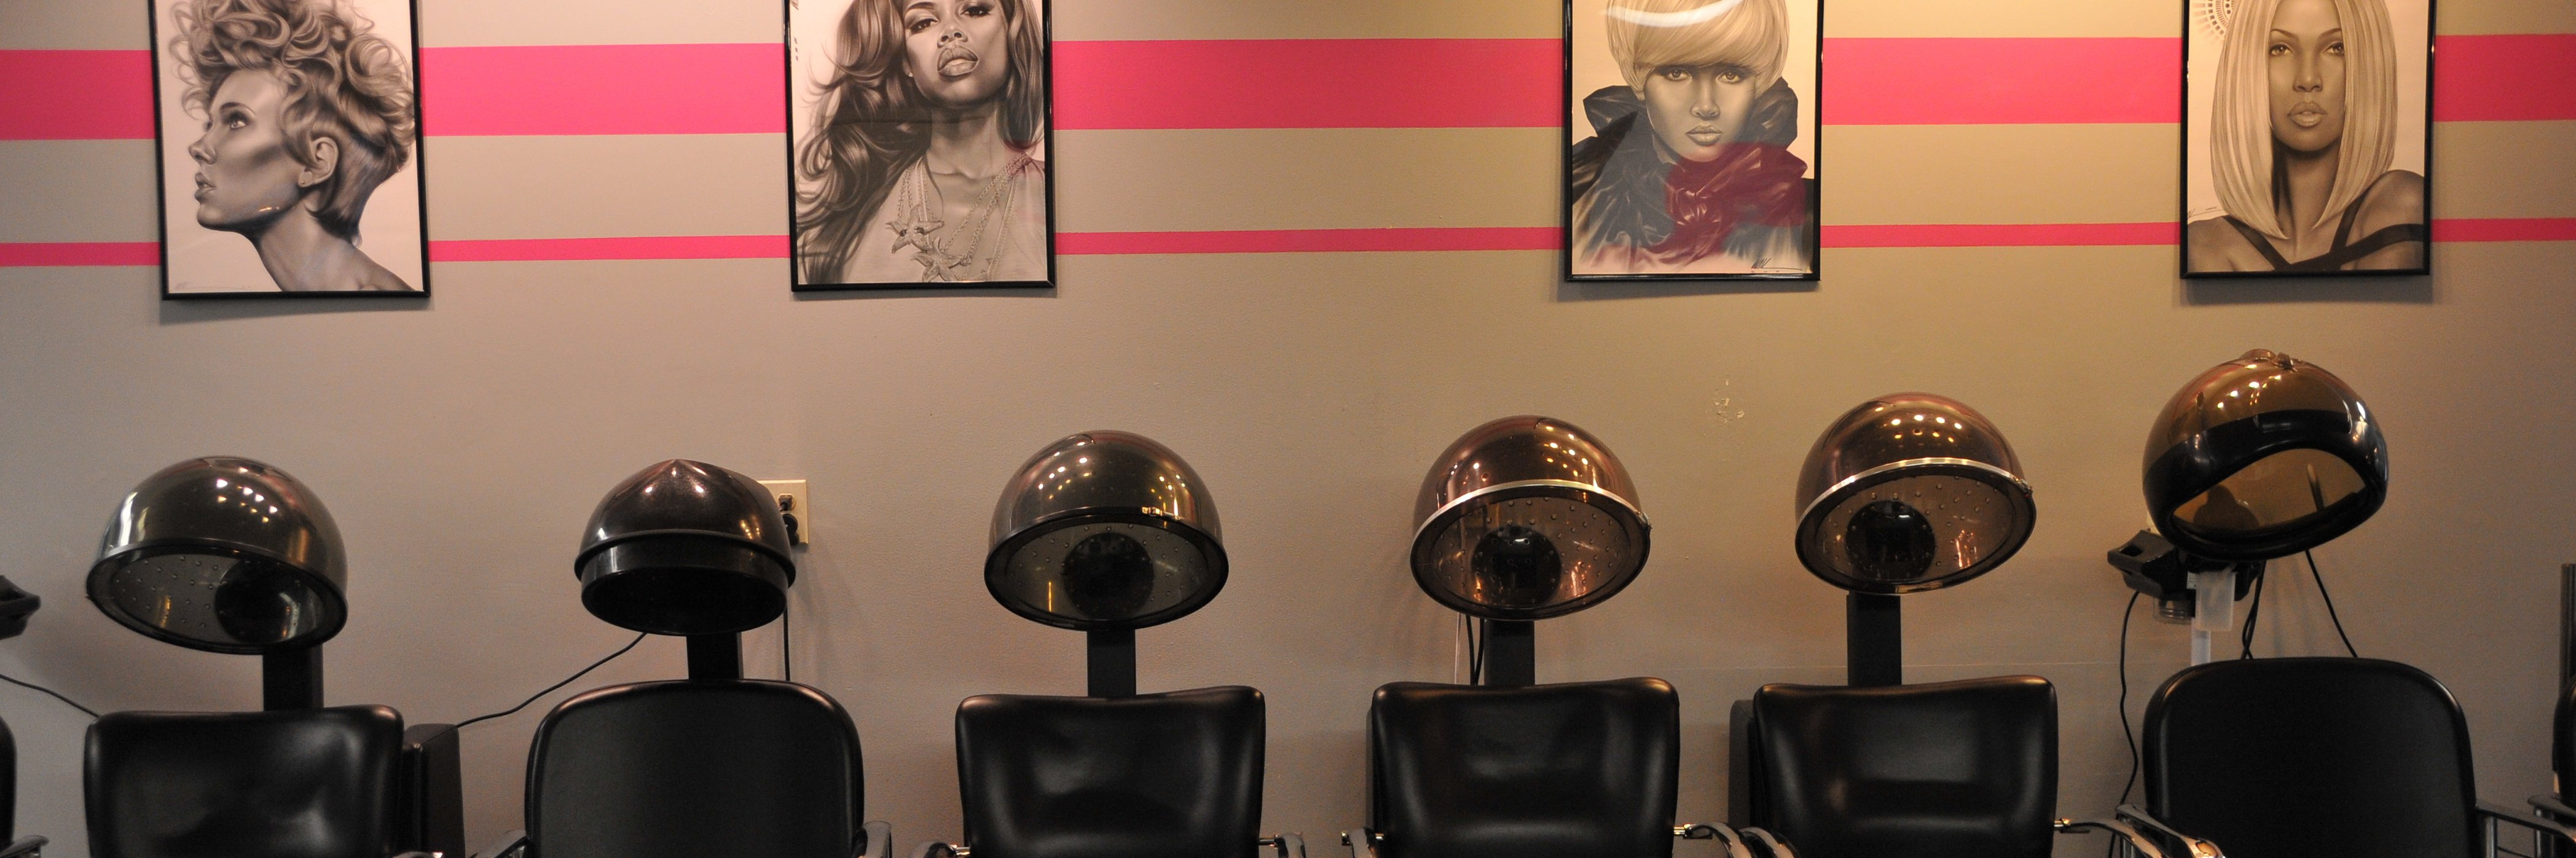 We Our Atlanta Hair Salon Offers A Full Line Of Services